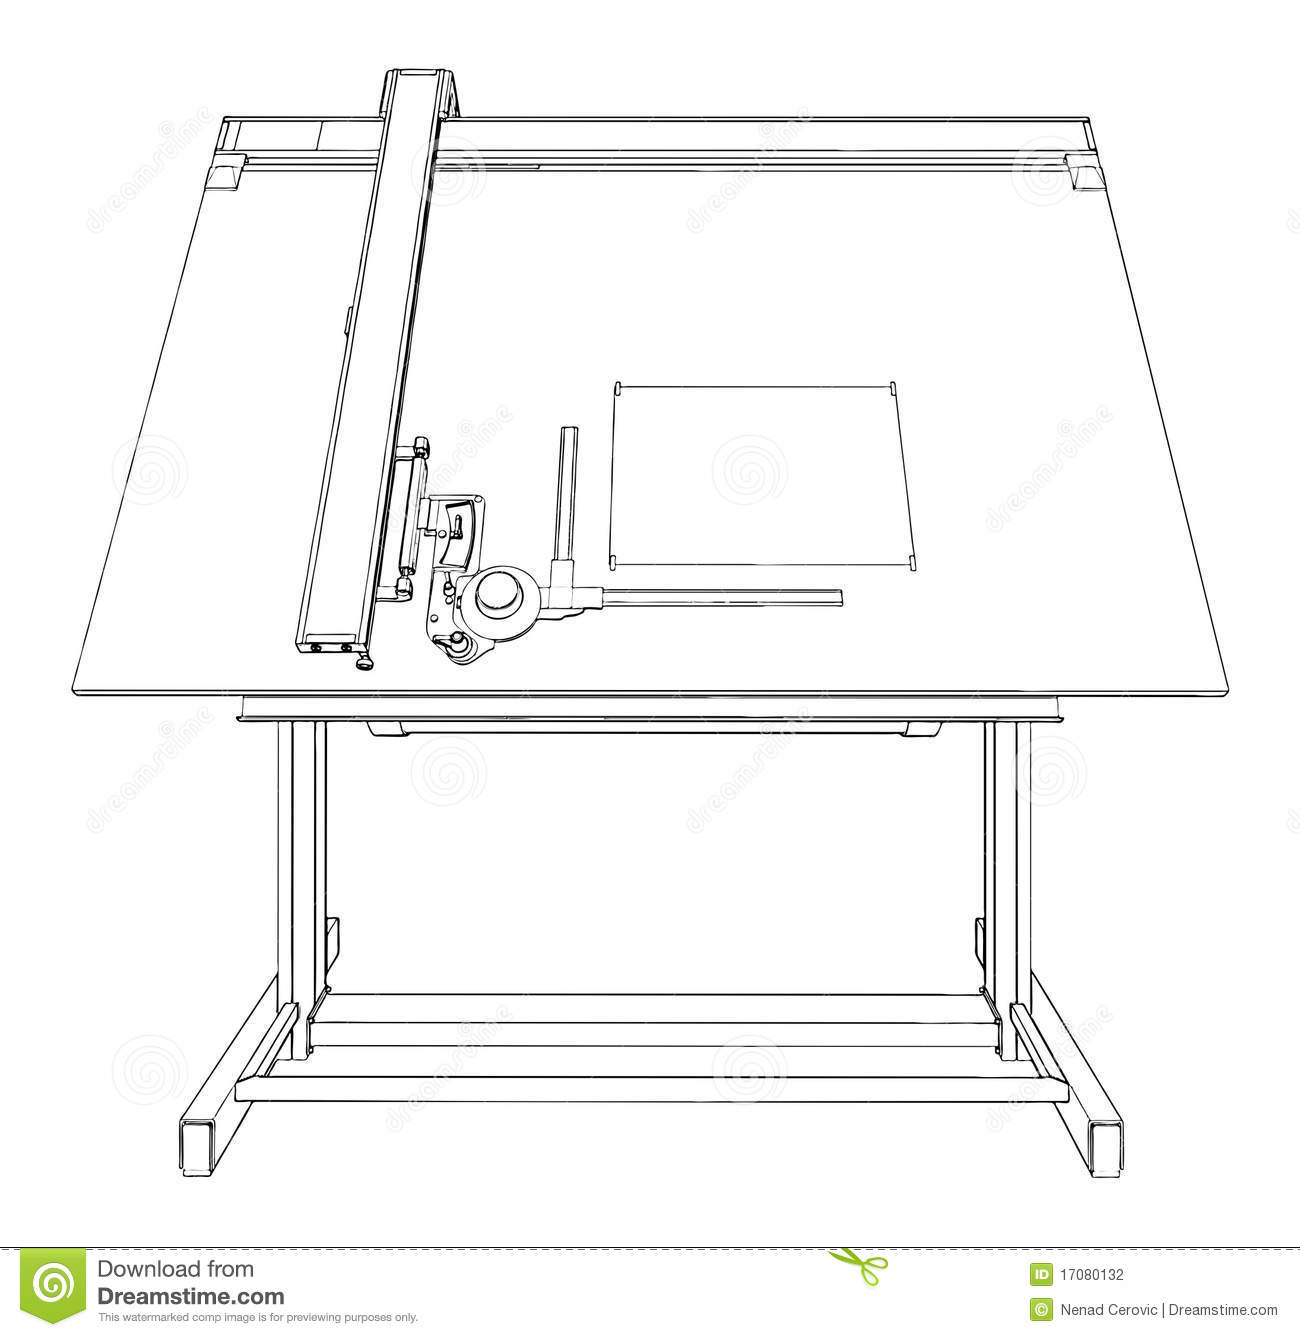 Architect clipart drafting table, Architect drafting table.